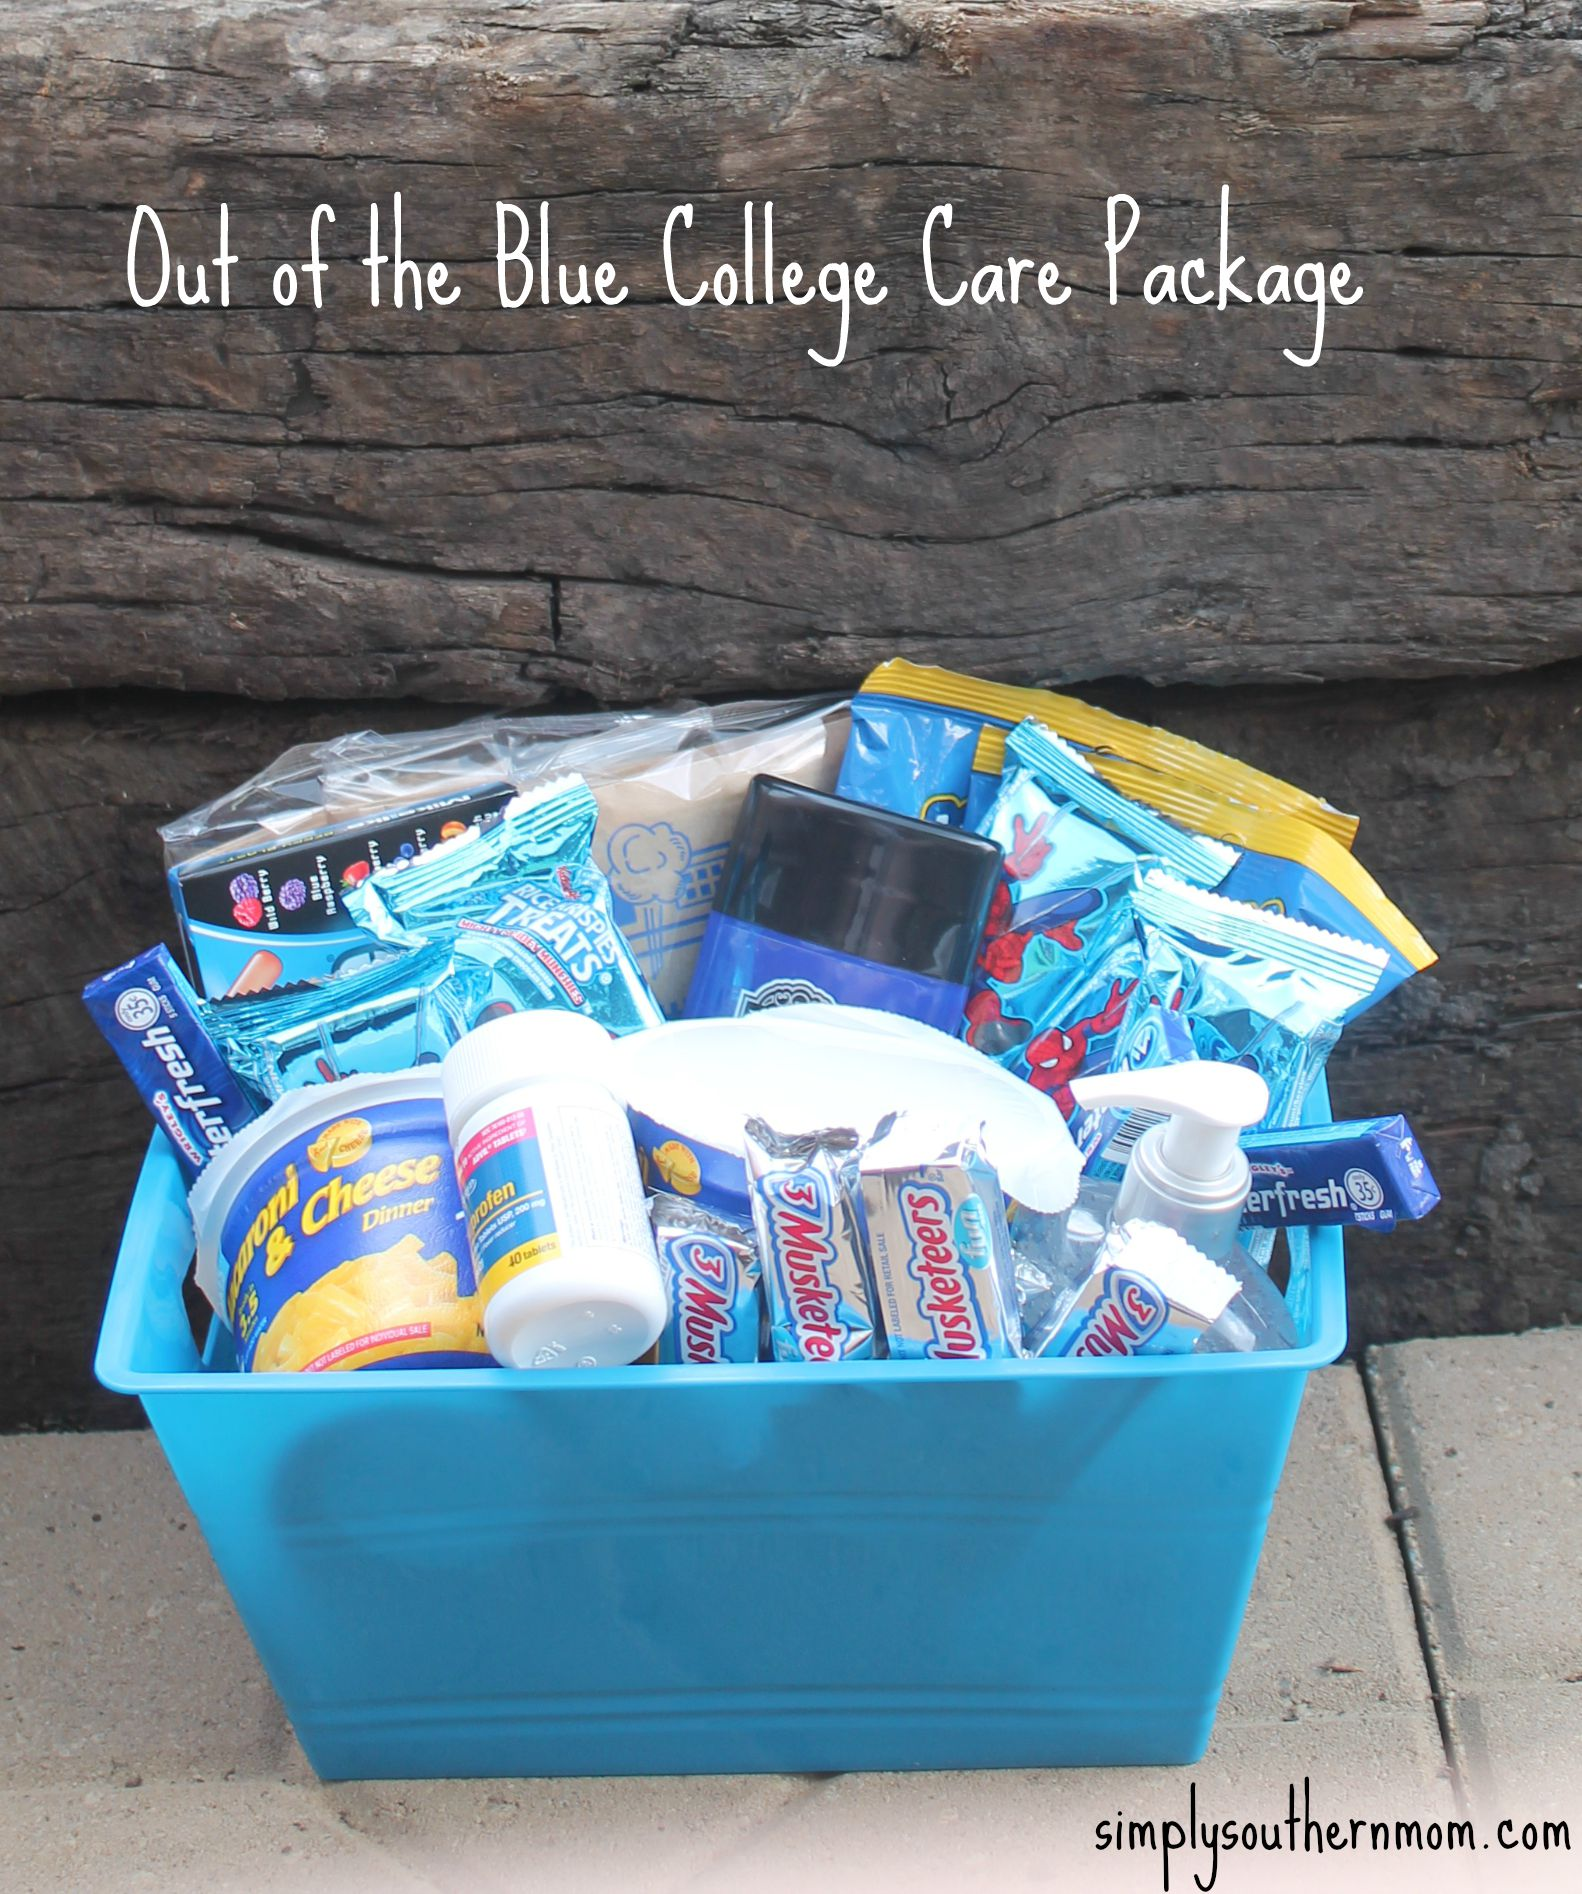 Out of the blue diy college gift basket simply southern mom out of the blue college care package negle Choice Image